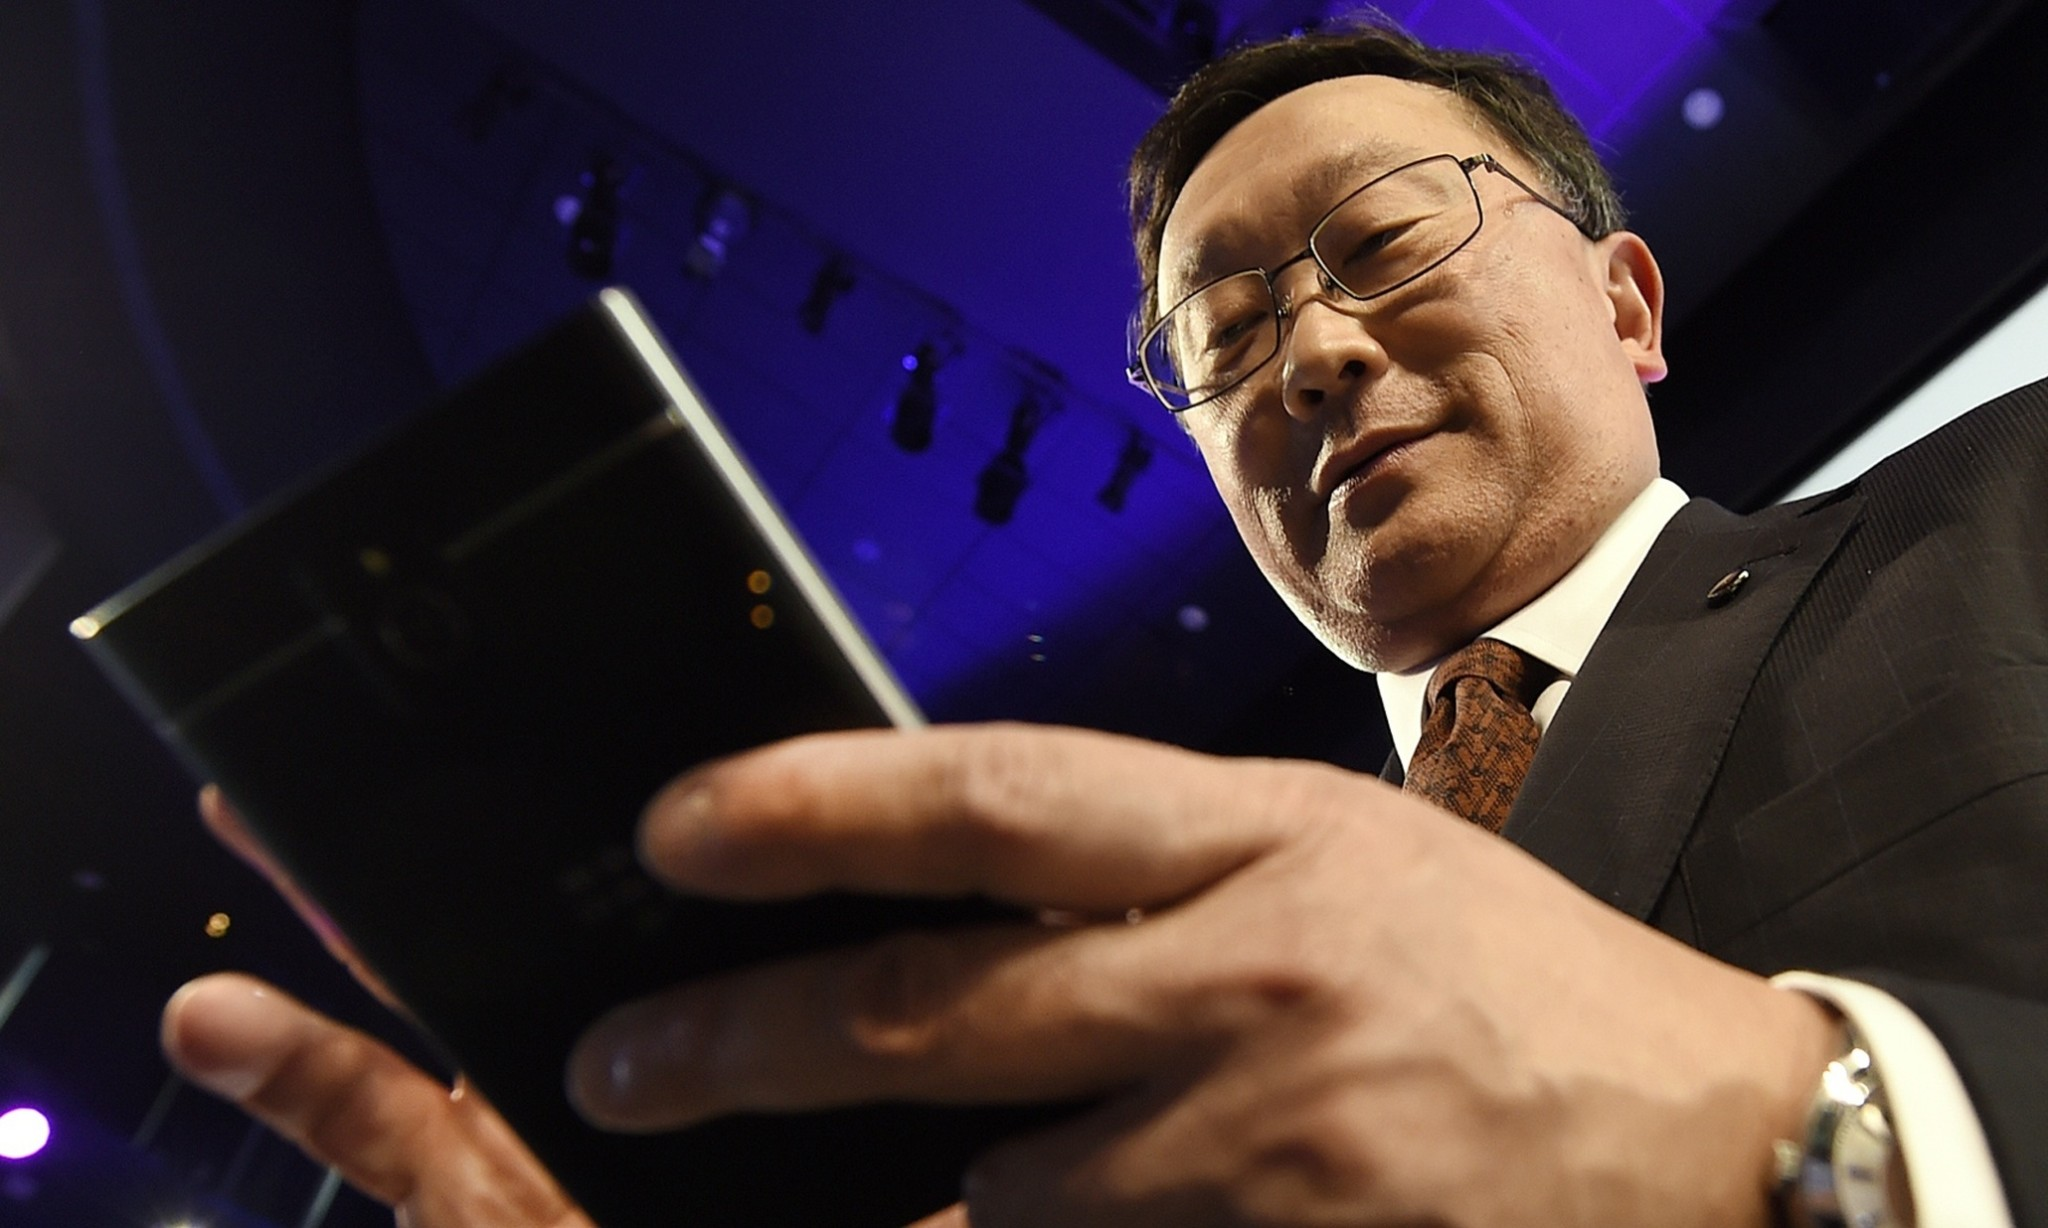 BlackBerry boss John Chen: security focus heralds return 'from edge of death'